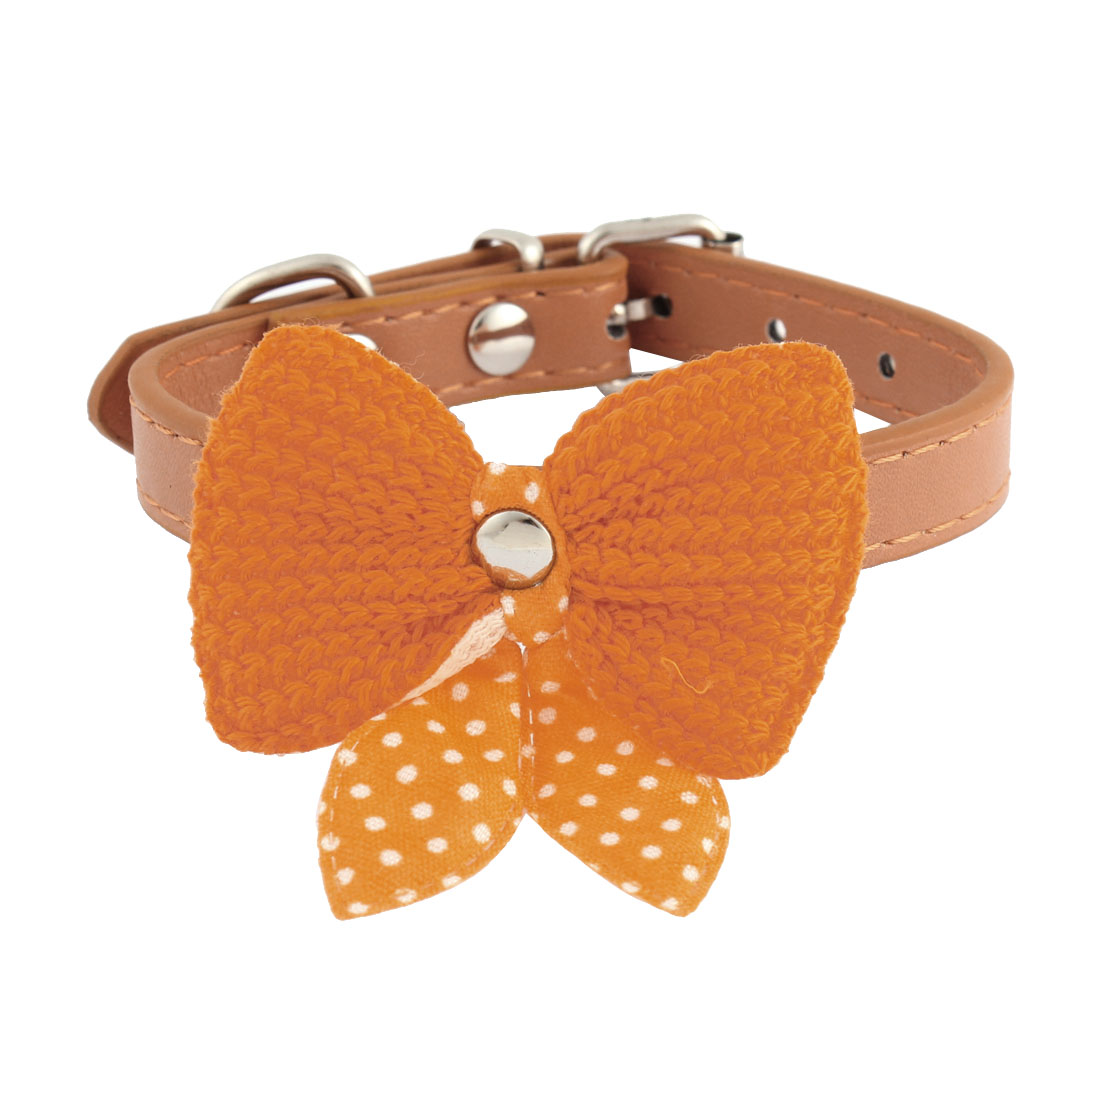 Single Pin Buckle Bow Bowknot Detail Pet Dog Kitty Collar 21-27.5cm Orange